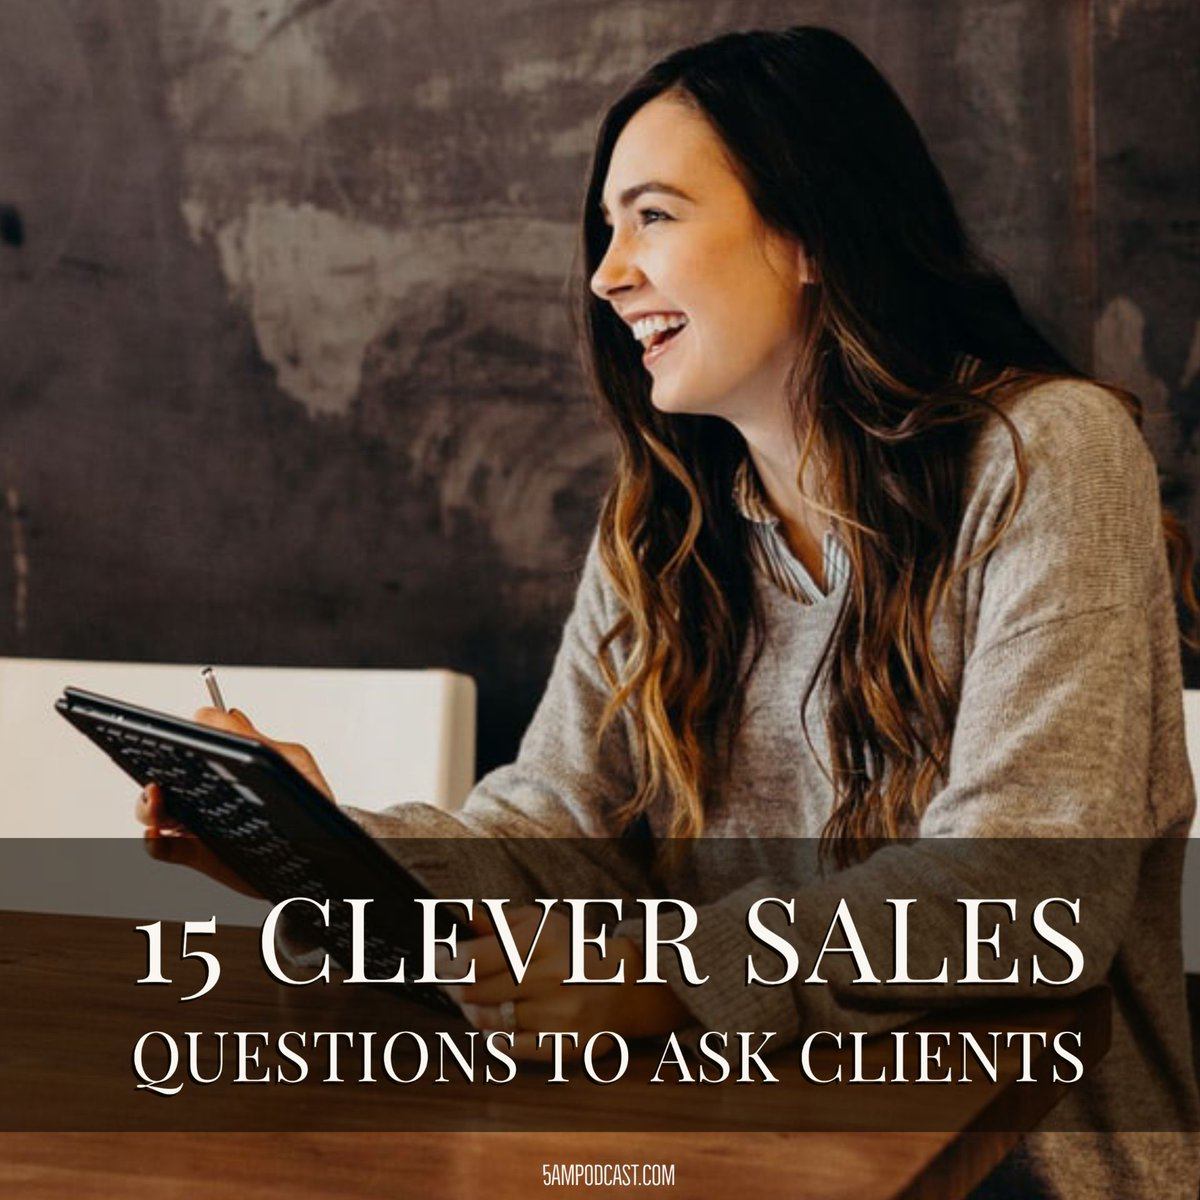 15 clever sales questions to ask clients to help navigate the sales process. Knowing what to do with the answers leads to successful conversations.  #5ampodcast #successful #goals #entrepreneurship #motivation #dontquityourdaydream #businessprinciples  http://bit.ly/3abKB8p pic.twitter.com/lzjMwcD99r